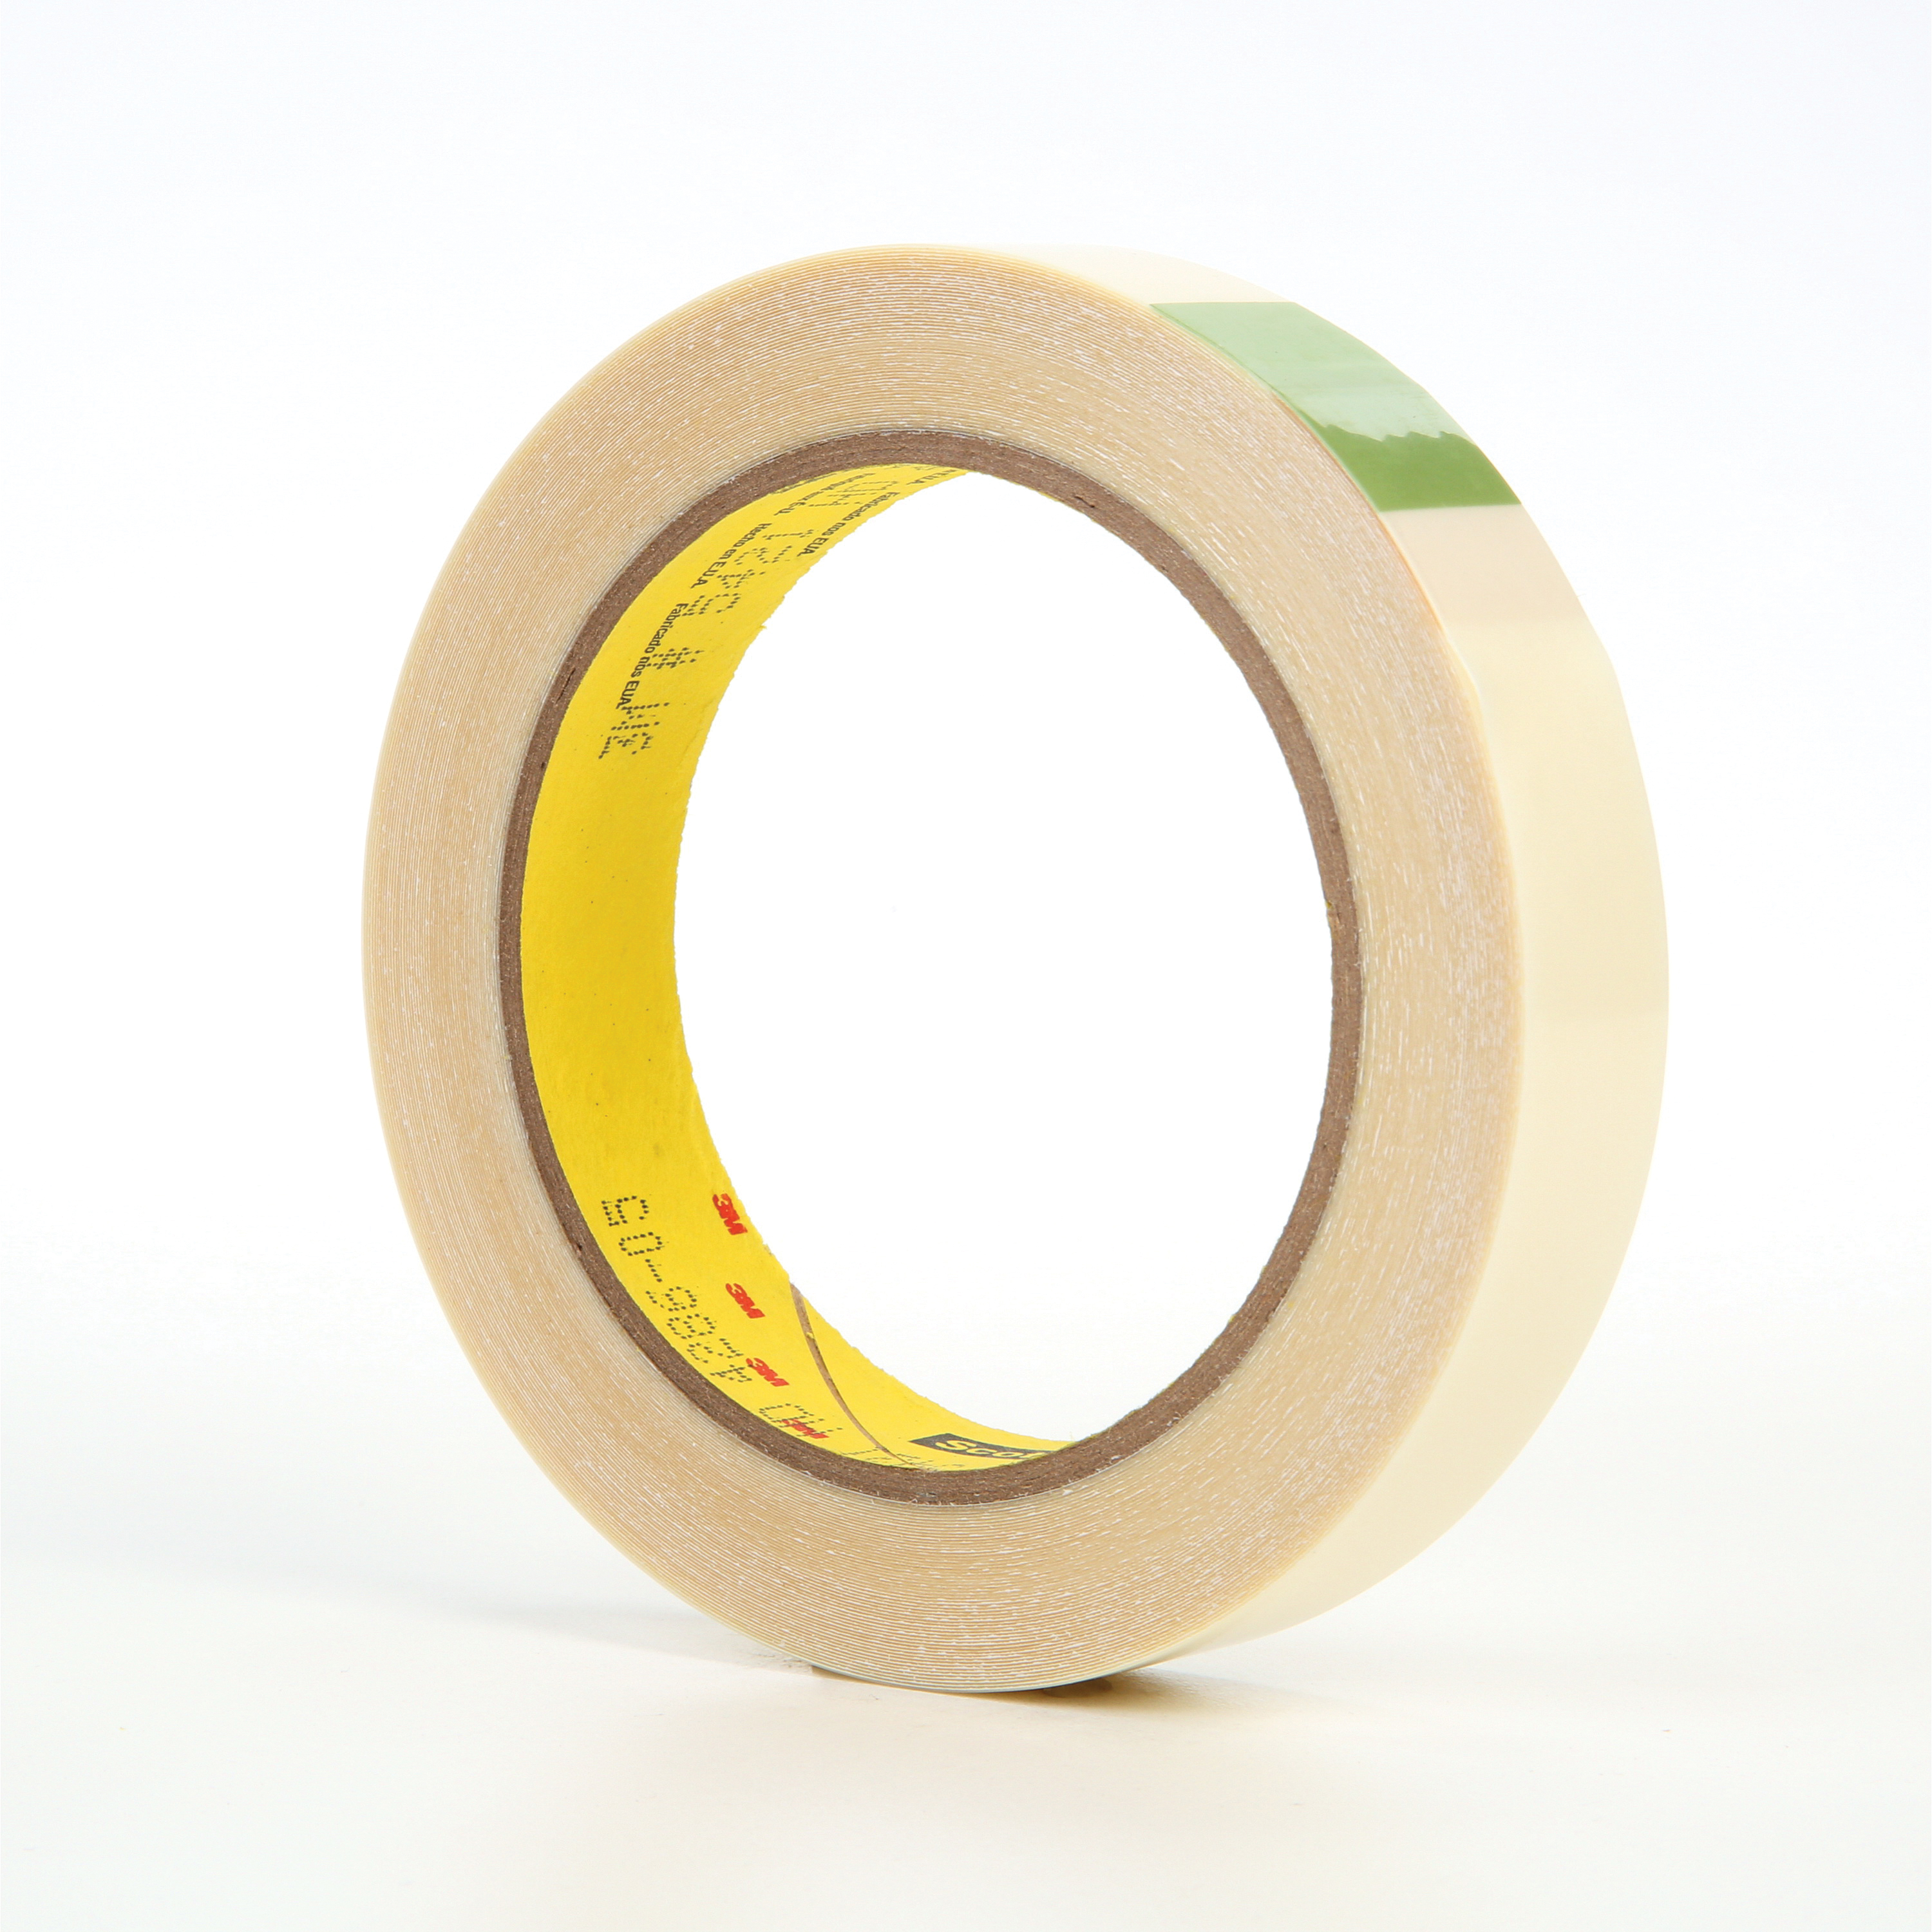 3M™ 021200-11987 General Purpose Film Tape, 18 yd L x 3/4 in W, 6.7 mil THK, Rubber Adhesive, UHMWP Backing, Transparent